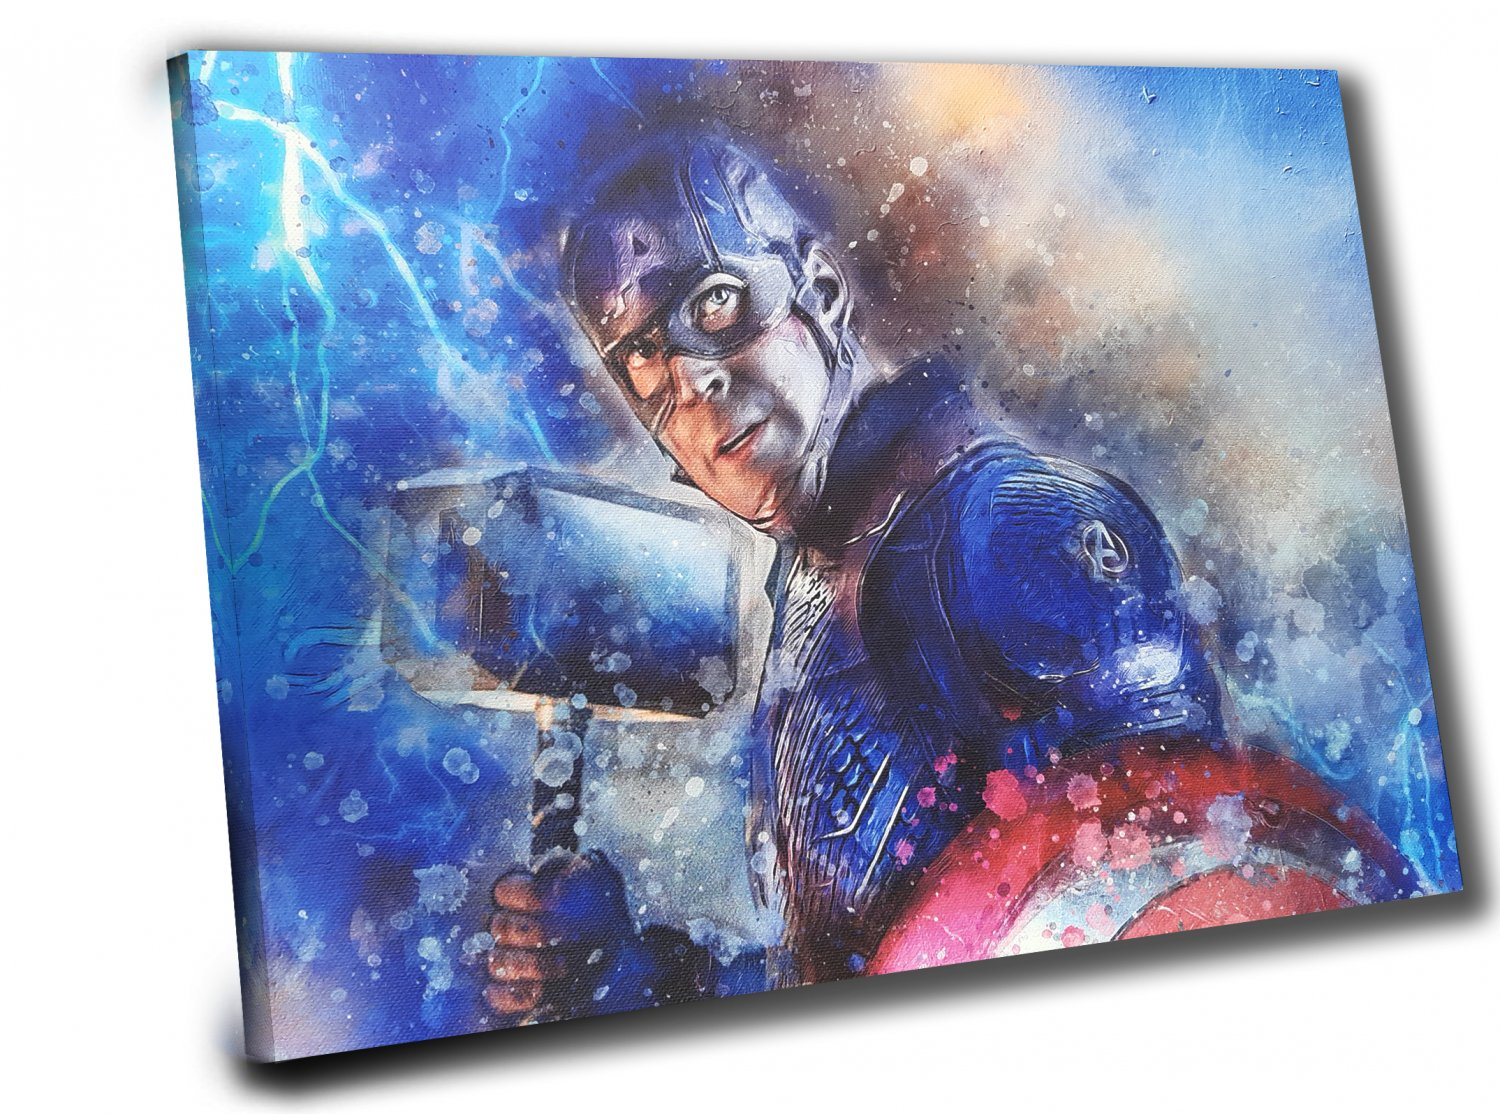 Captain America, Avengers Endgame   12x16 inches Stretched Canvas